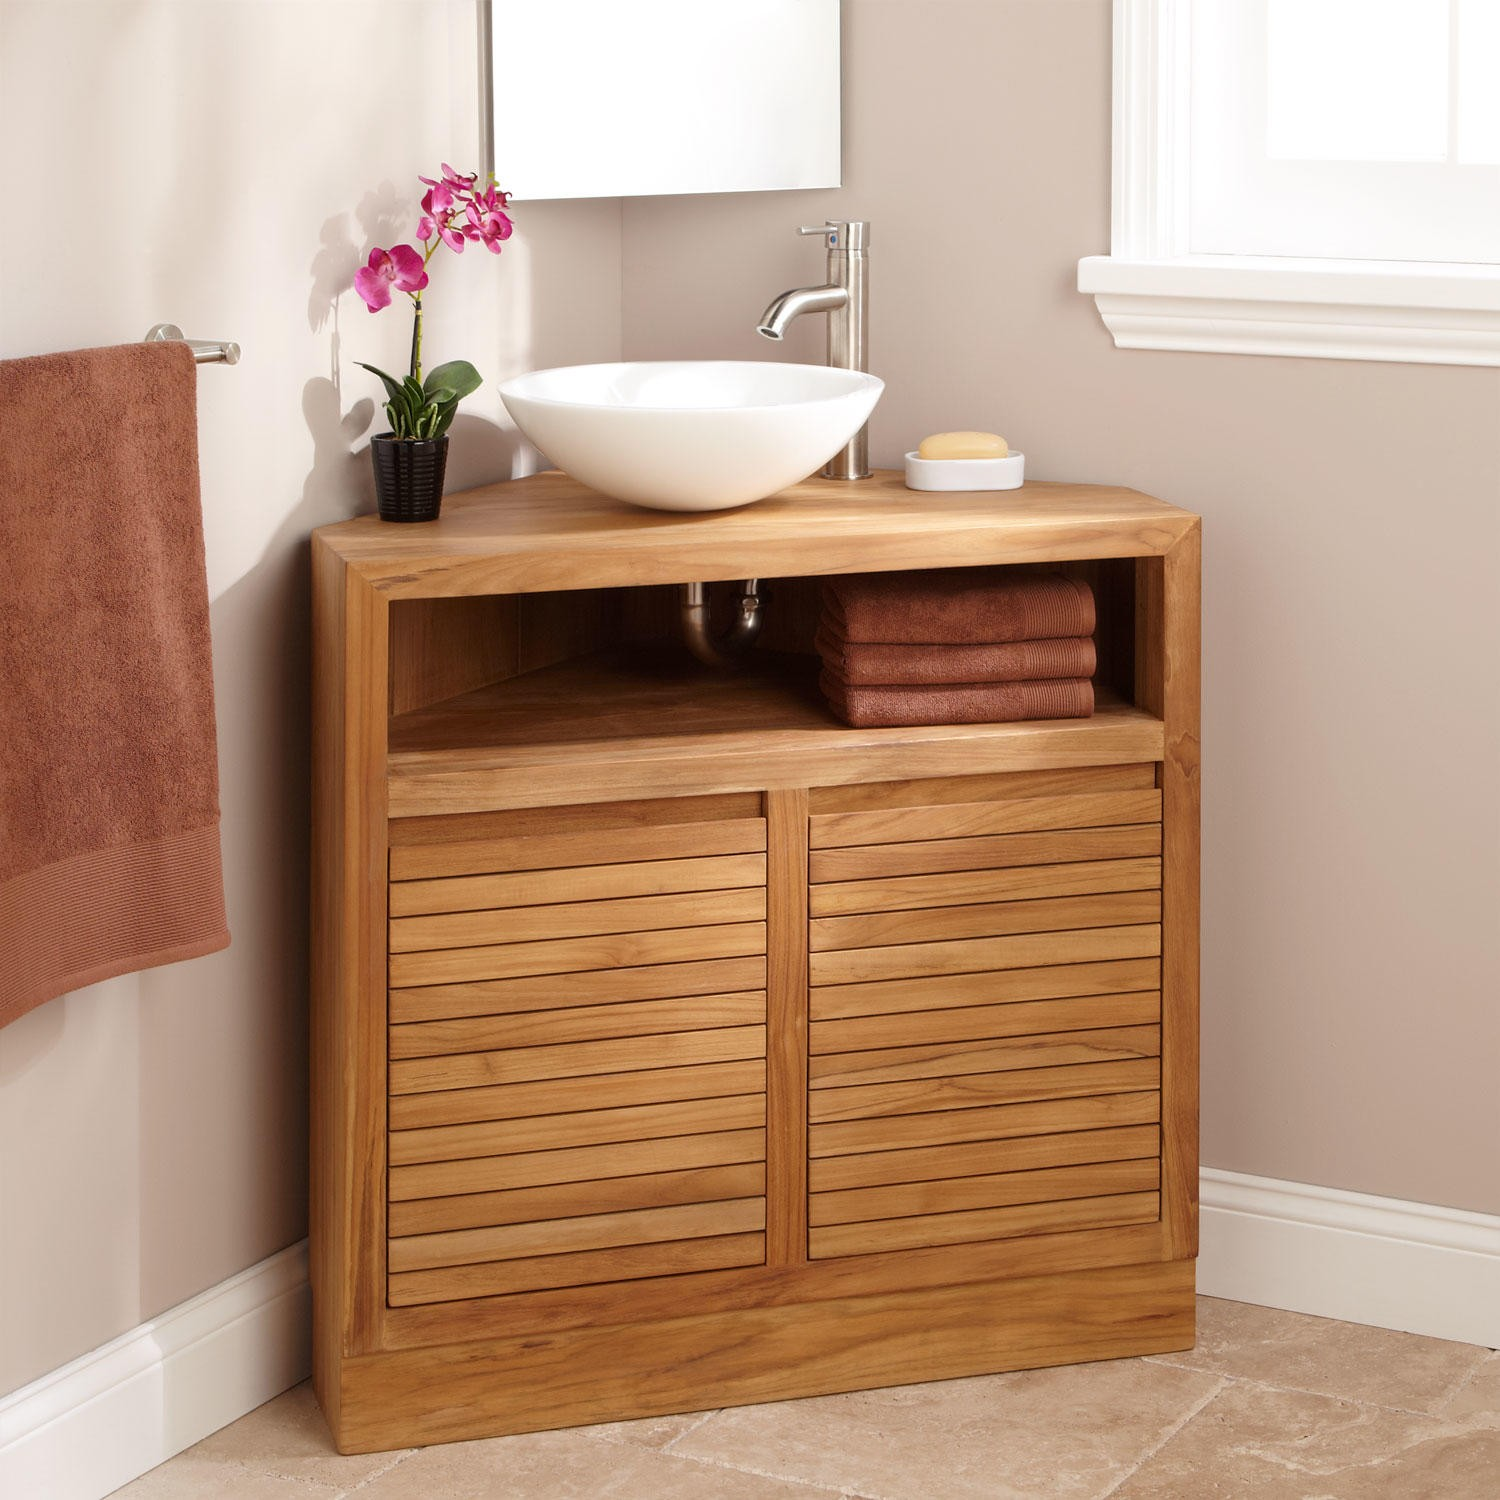 corner vanity ... teak vanity fits perfectly into a corner space. the natural grains of SZKZDUI